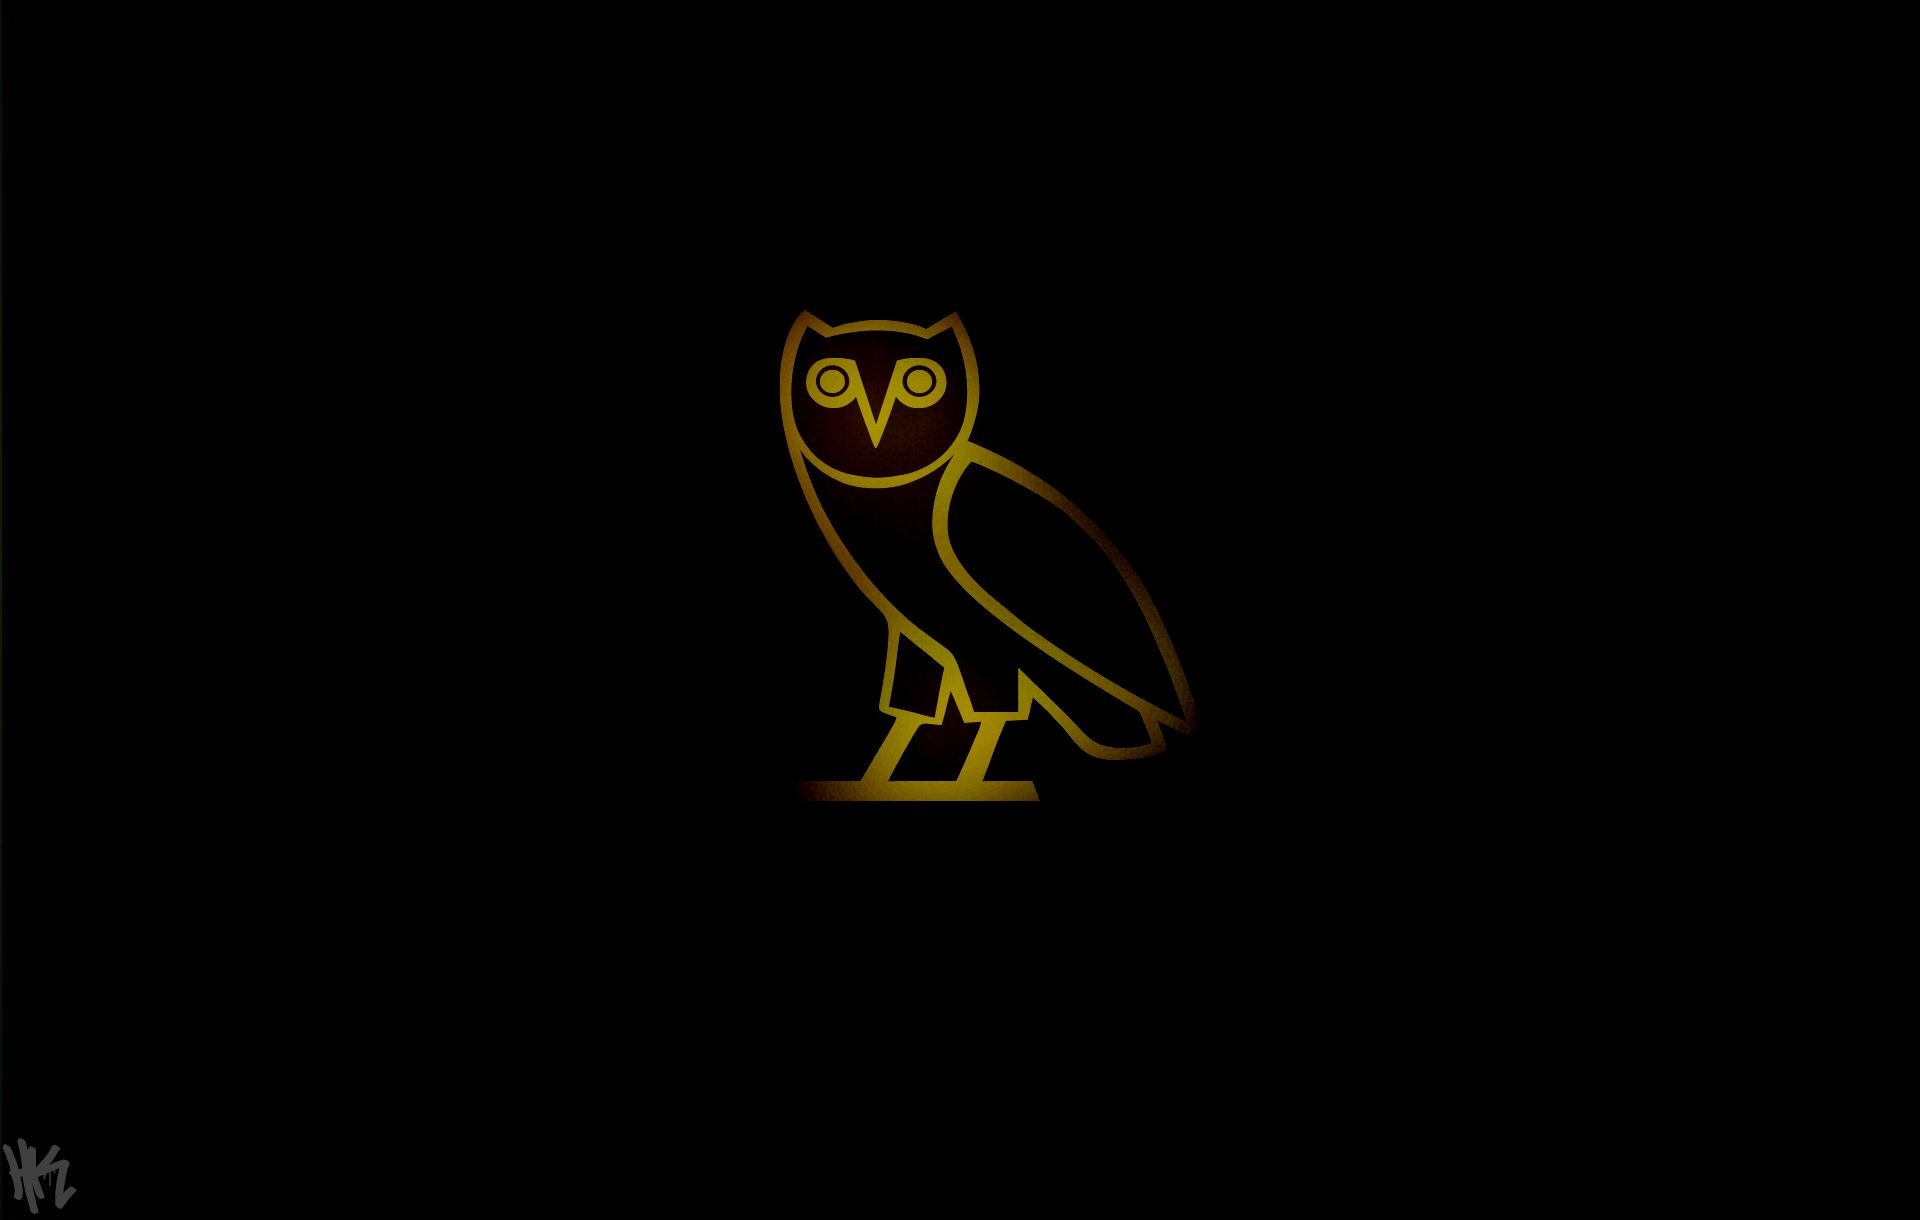 Good Wallpaper Logo Owl - 5aedcd223749aa340cd76a1df4b1aa1f  Best Photo Reference_808097.jpg